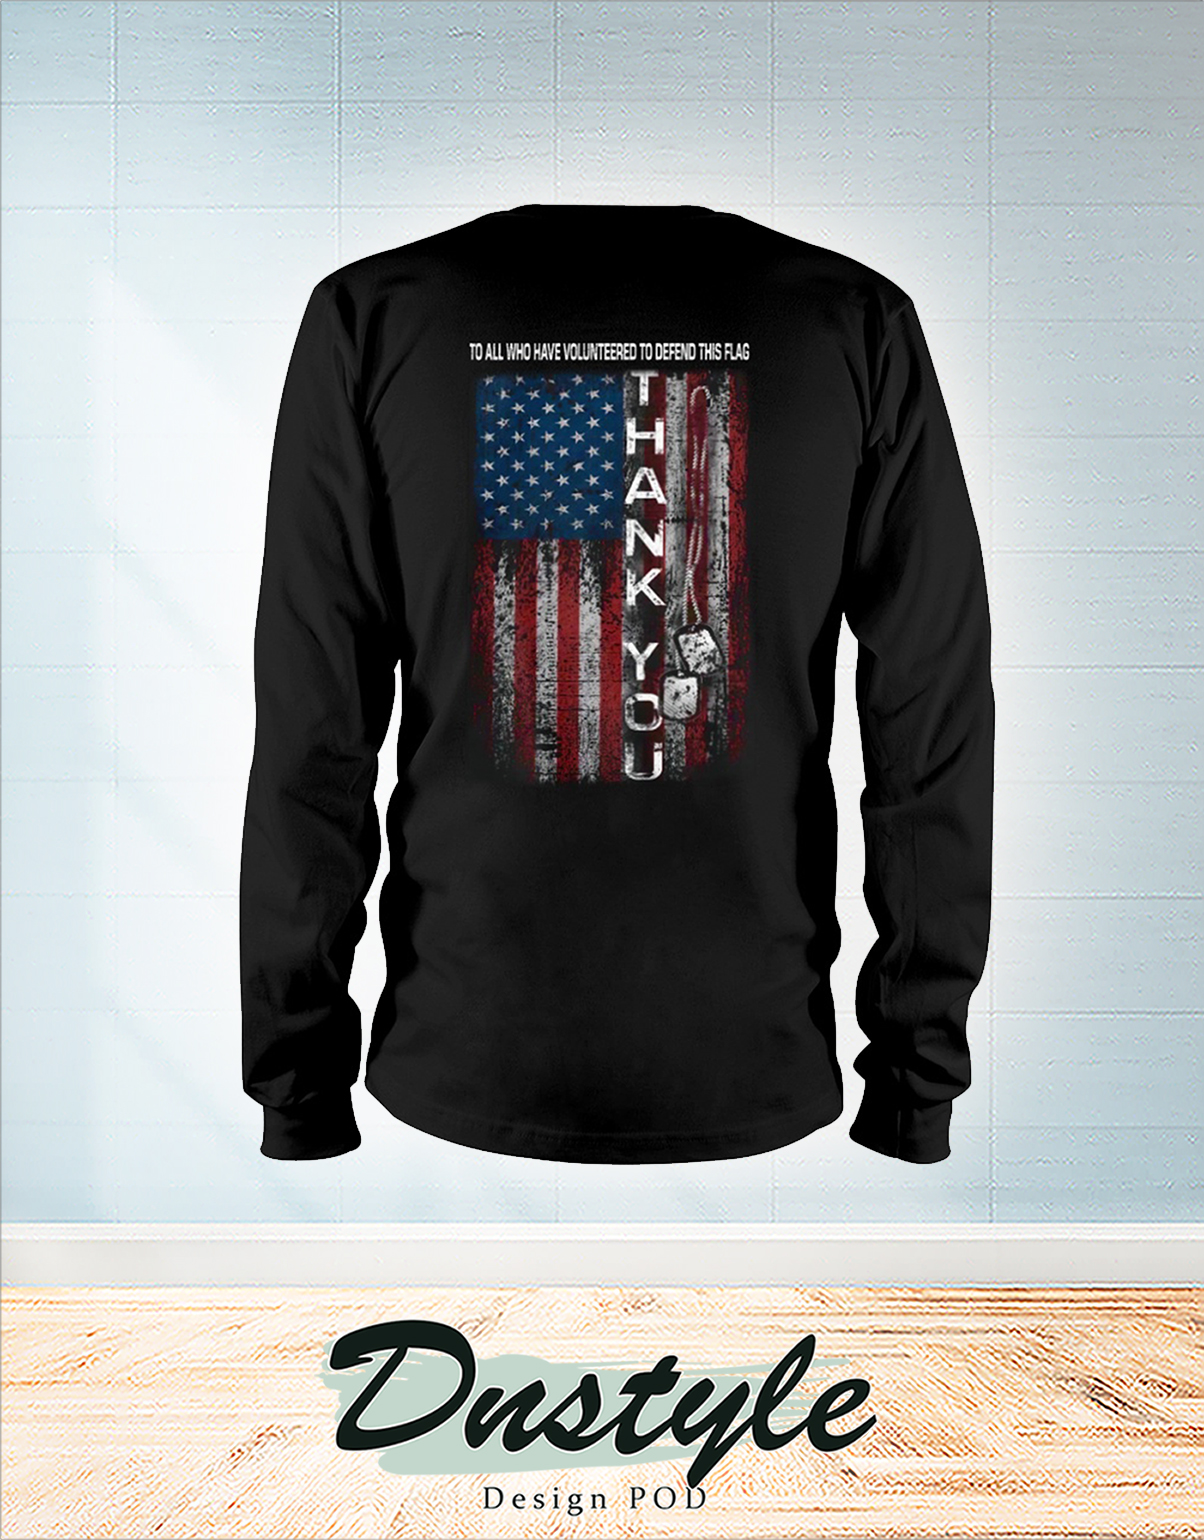 To all who have volunteered to defend this flag long sleeve